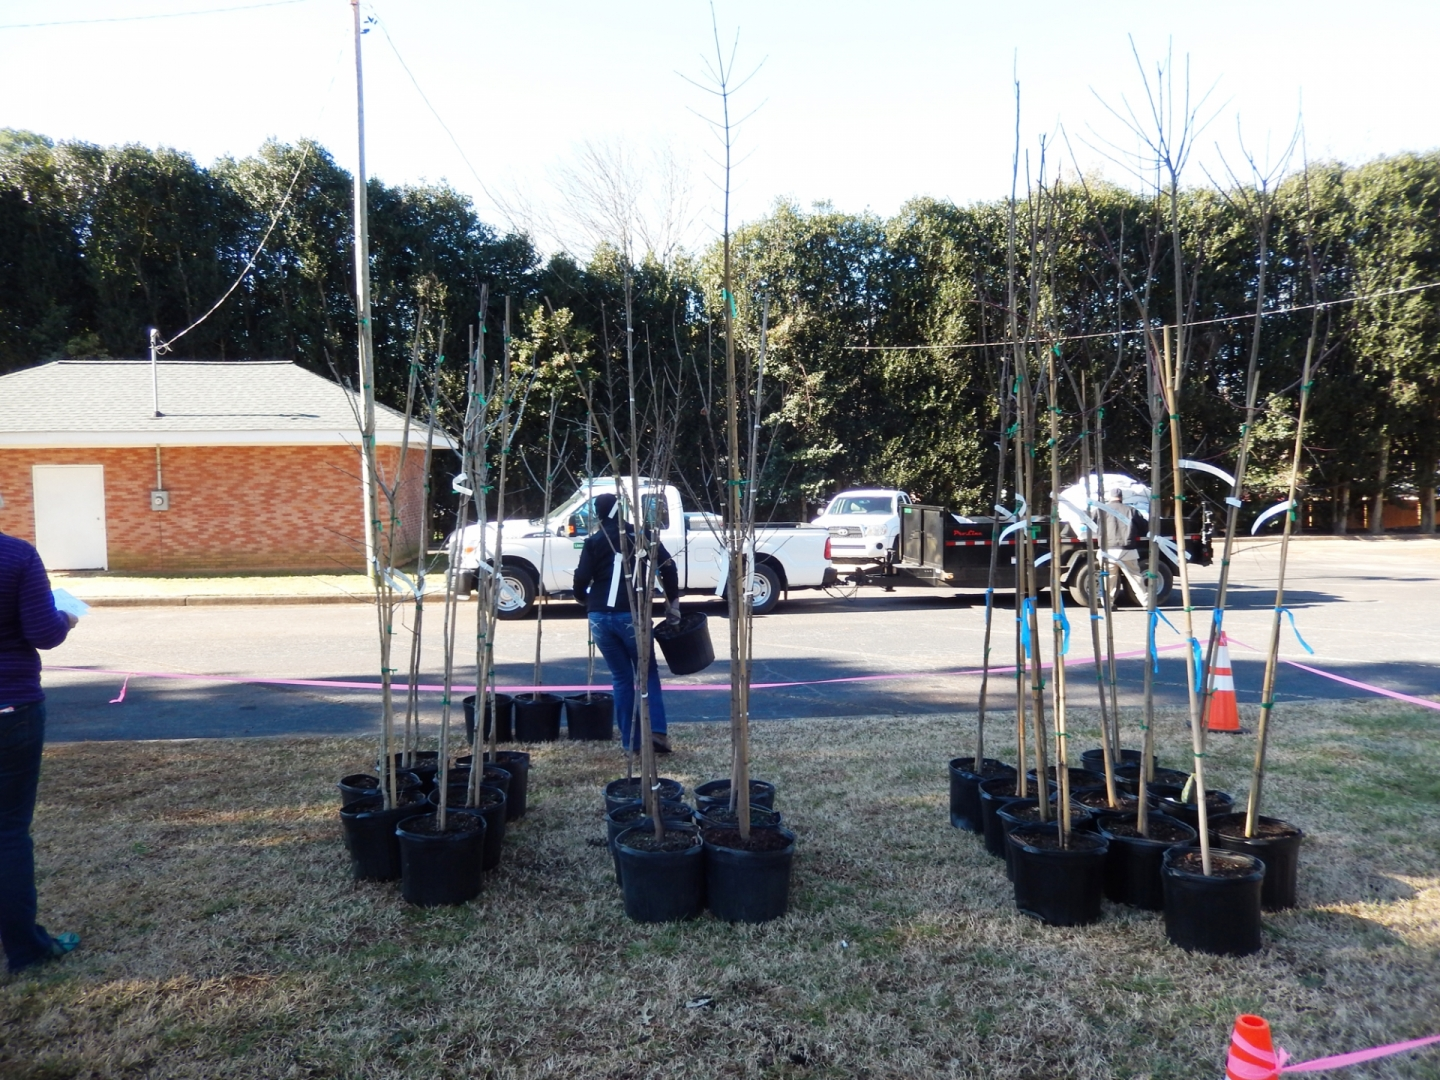 Small trees await planting in the Eastway Park-Sheffield neighborhood, a project in collaboration with TreesCharlotte. Photo: Mae Israel